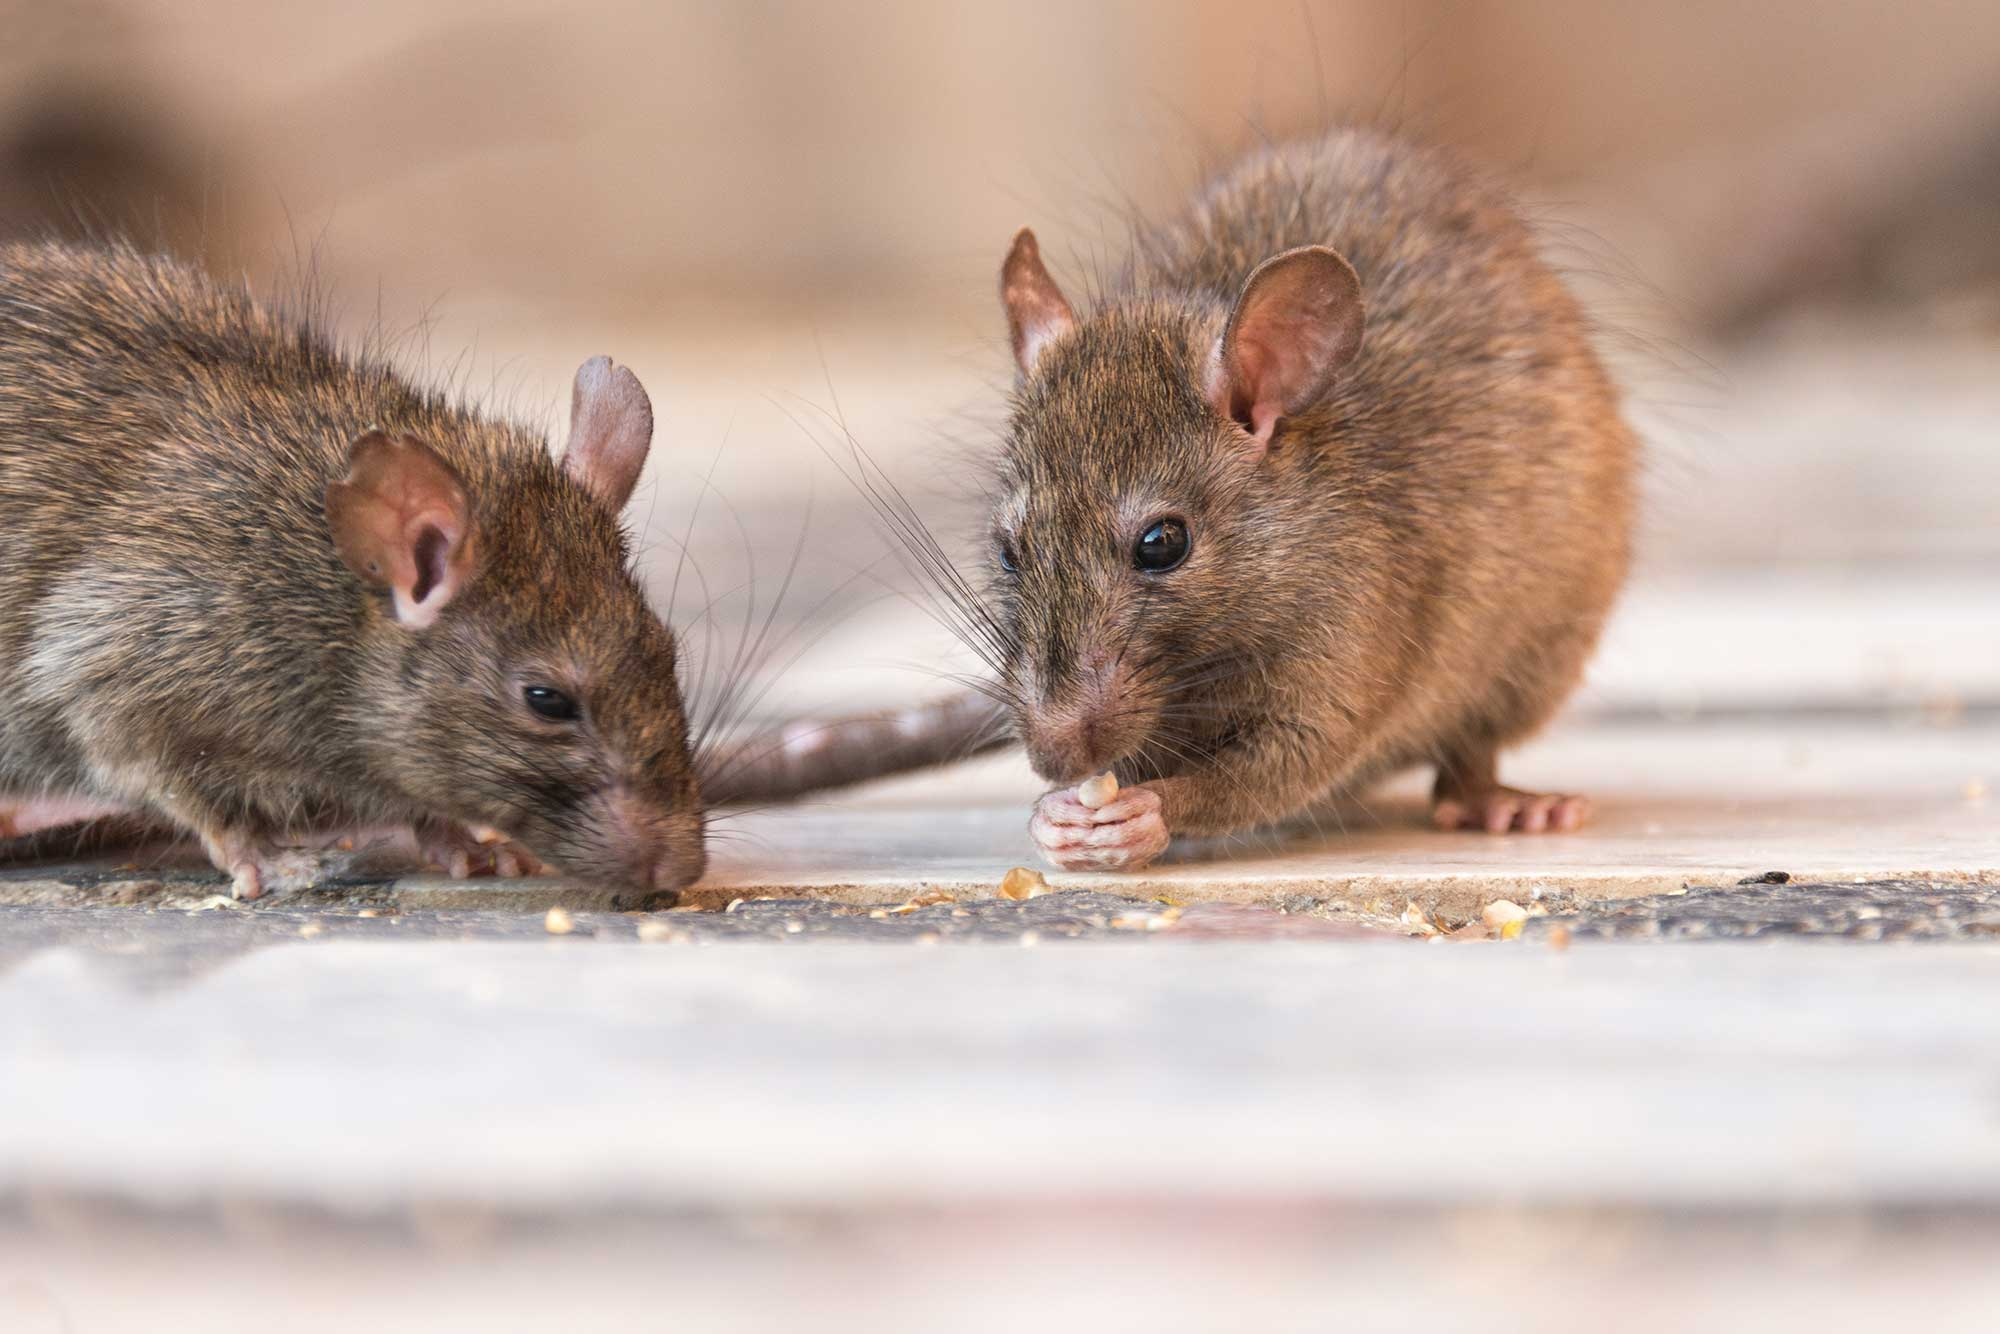 Two mice eating crumbs